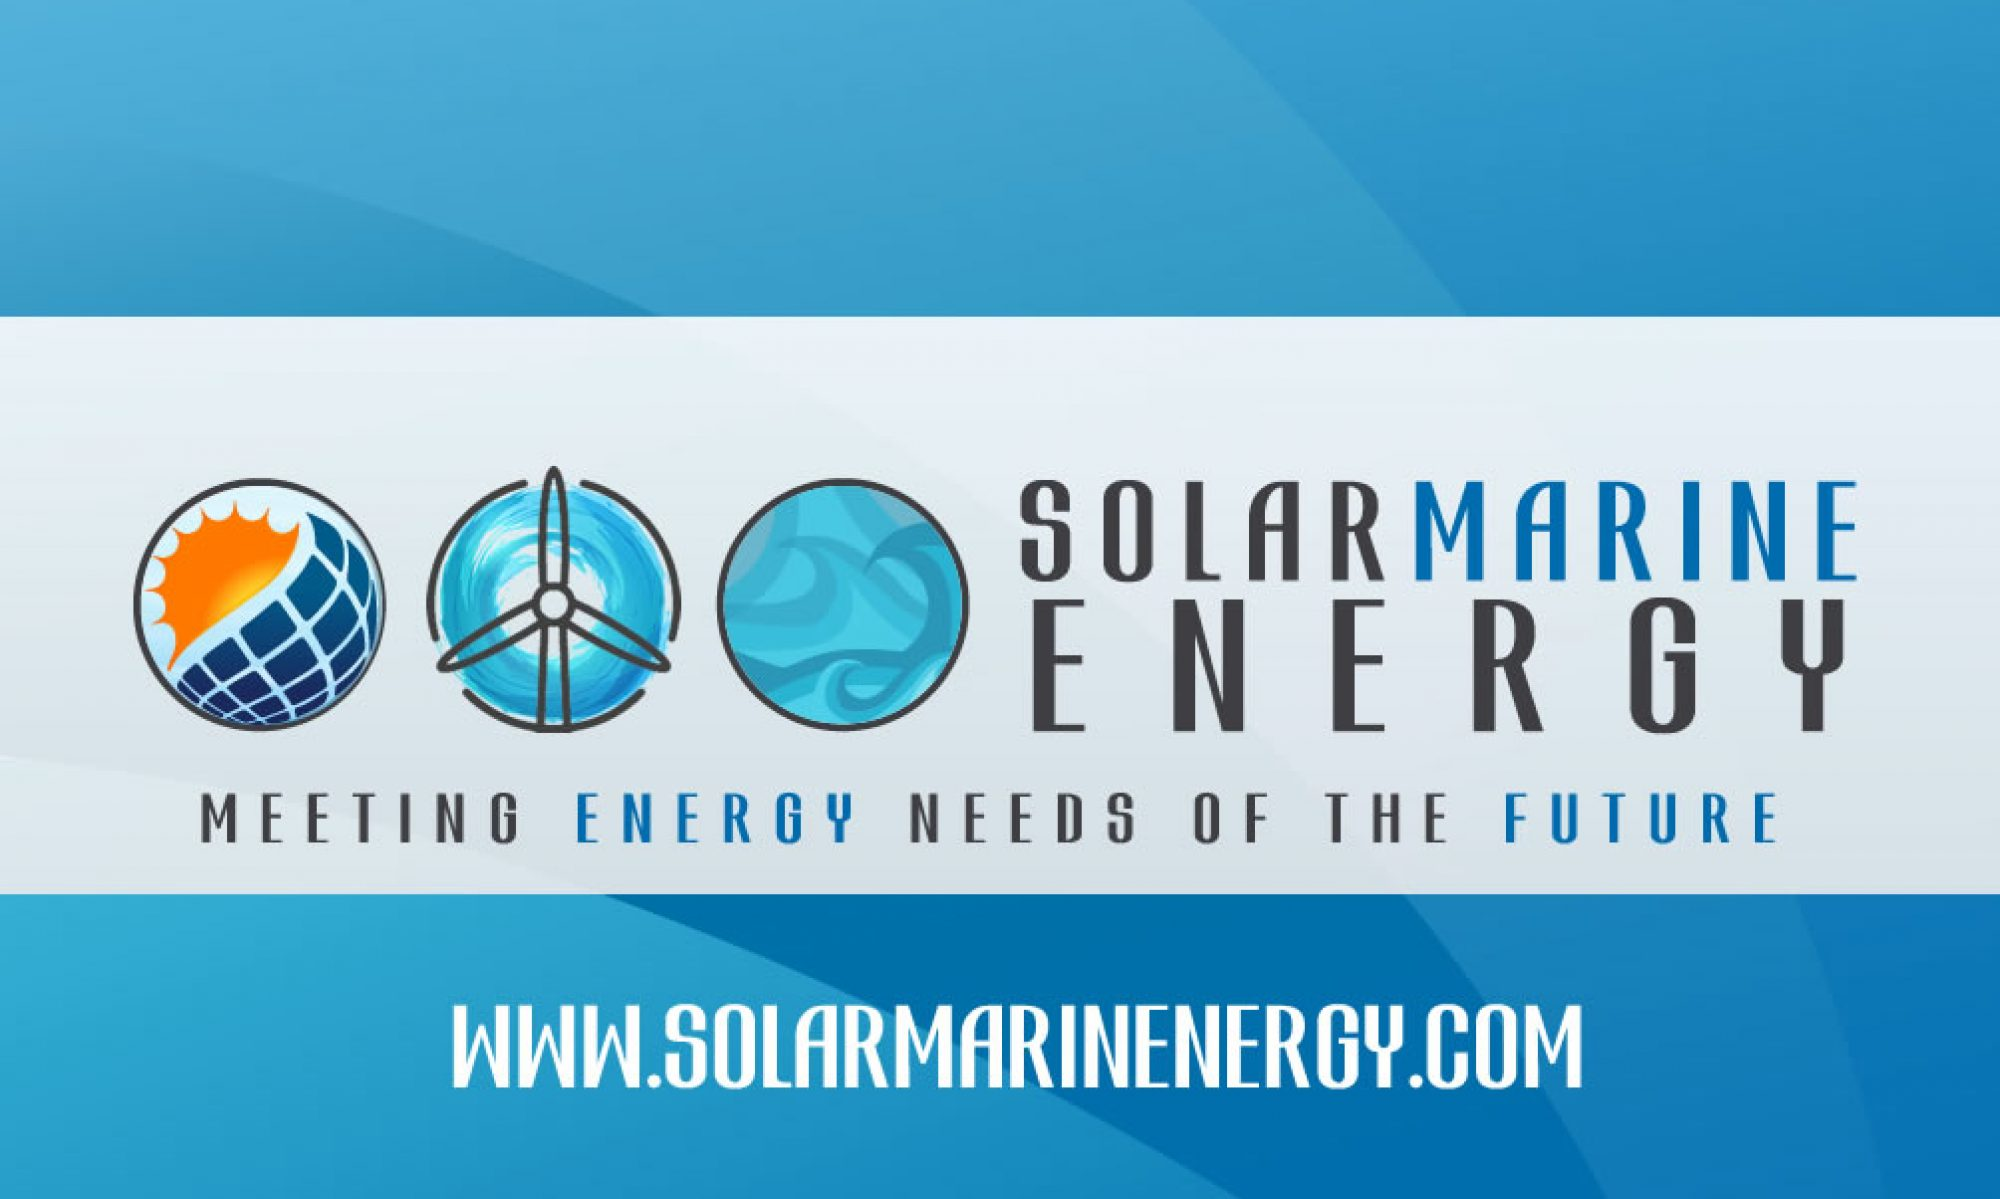 SolarMarine Energy Floating Photovoltaics Energy Plant Design Solutions